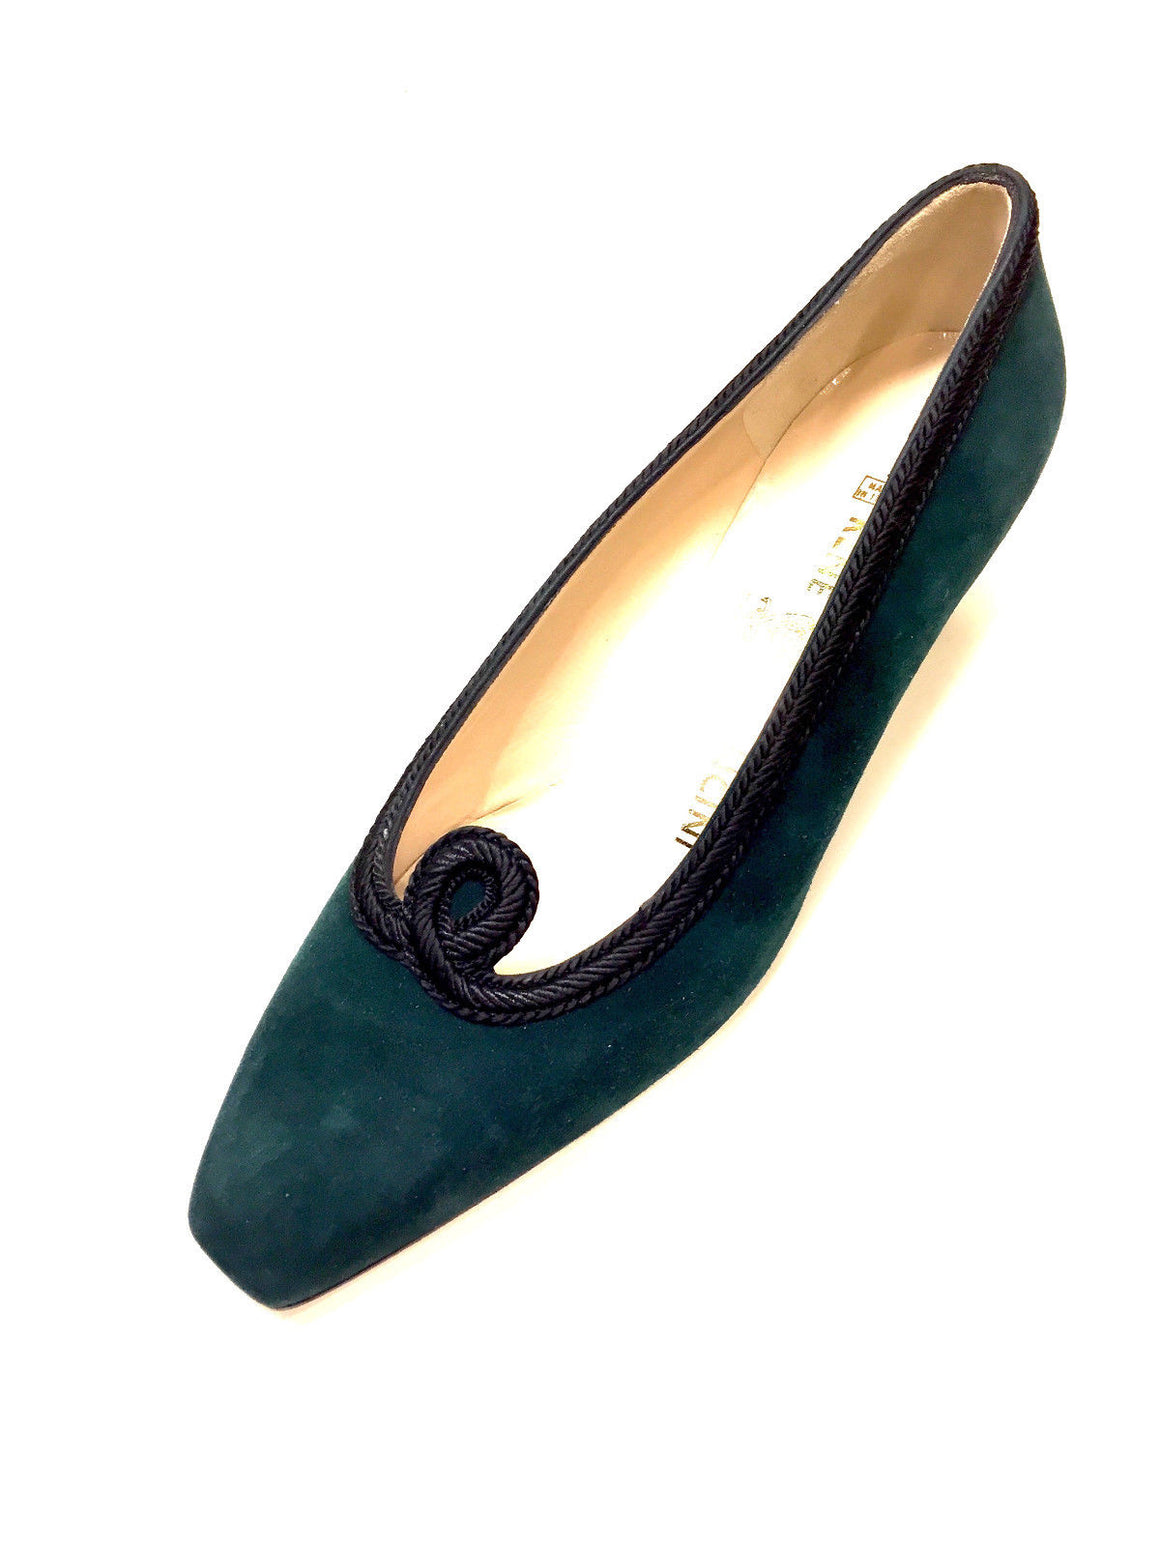 RENE MANCINI Forest-Green Suede Black Passementerie Trim Low-Heel Pumps Size: 37/7